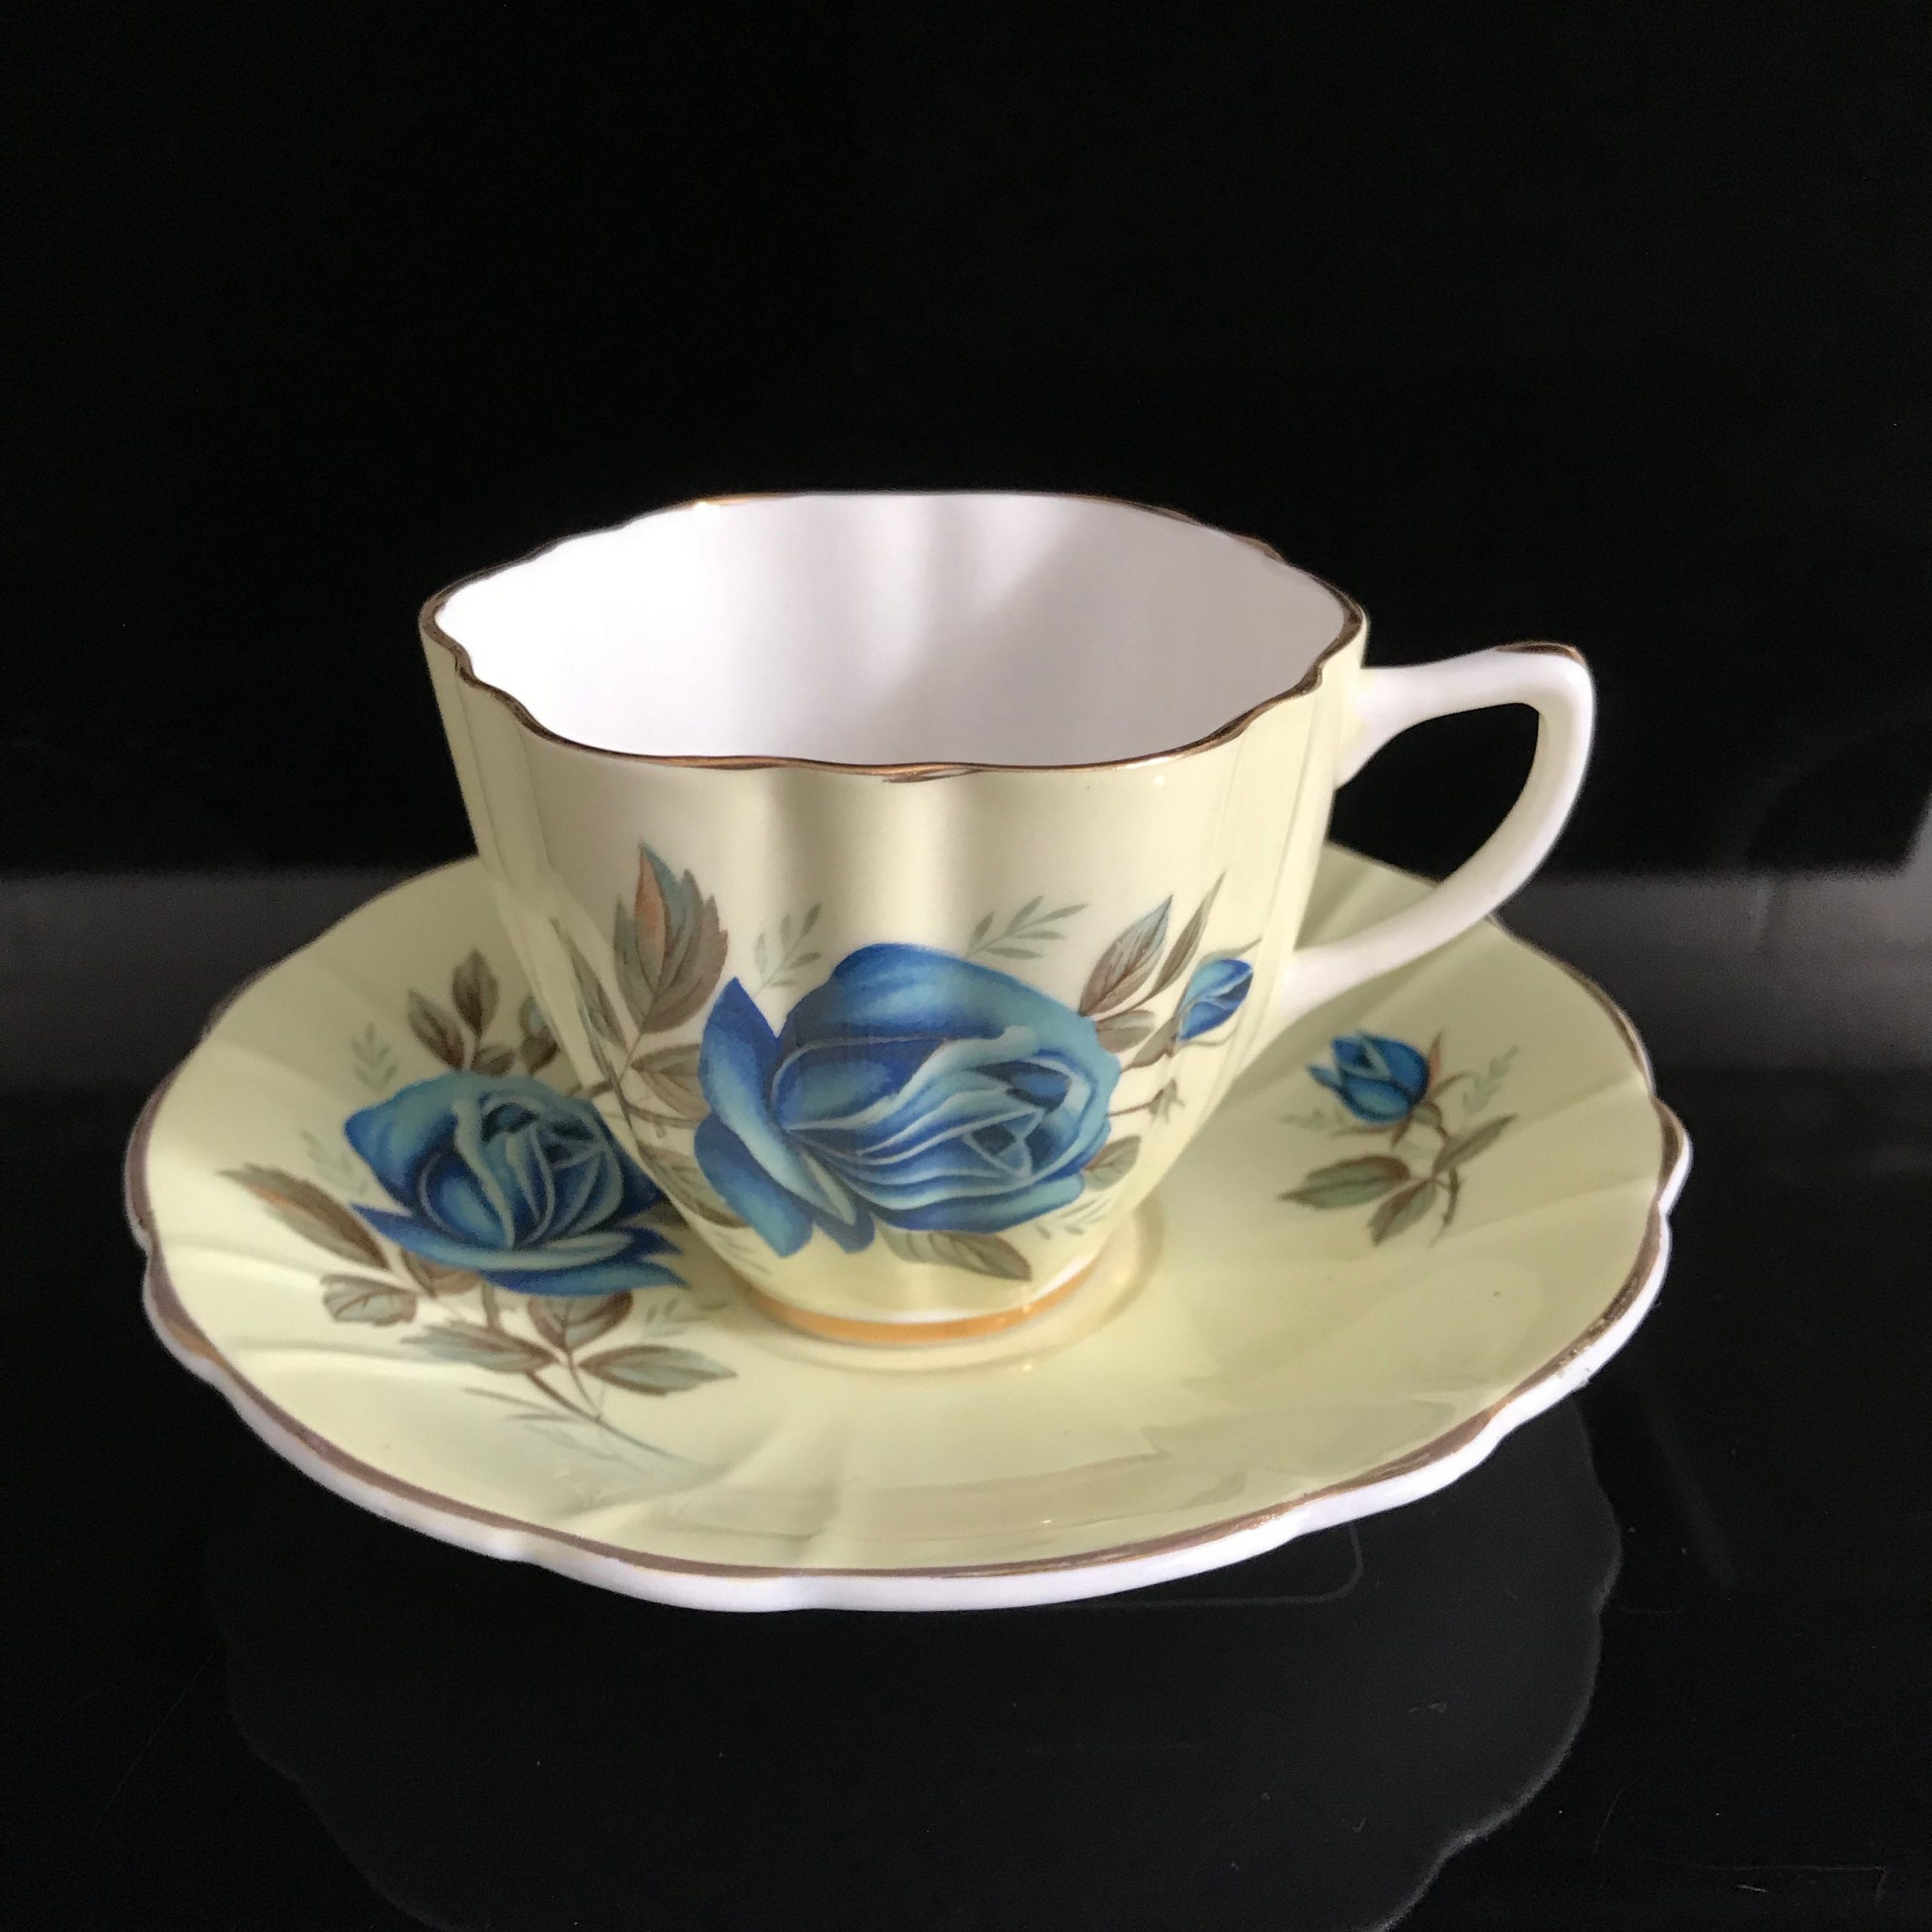 Crownford Tea Cup And Saucer England Fine Bone China Yellow With A Large Blue Rose A Blue Rose Bud Farmhouse Collectible Display Serving Carol S True Vintage And Antiques